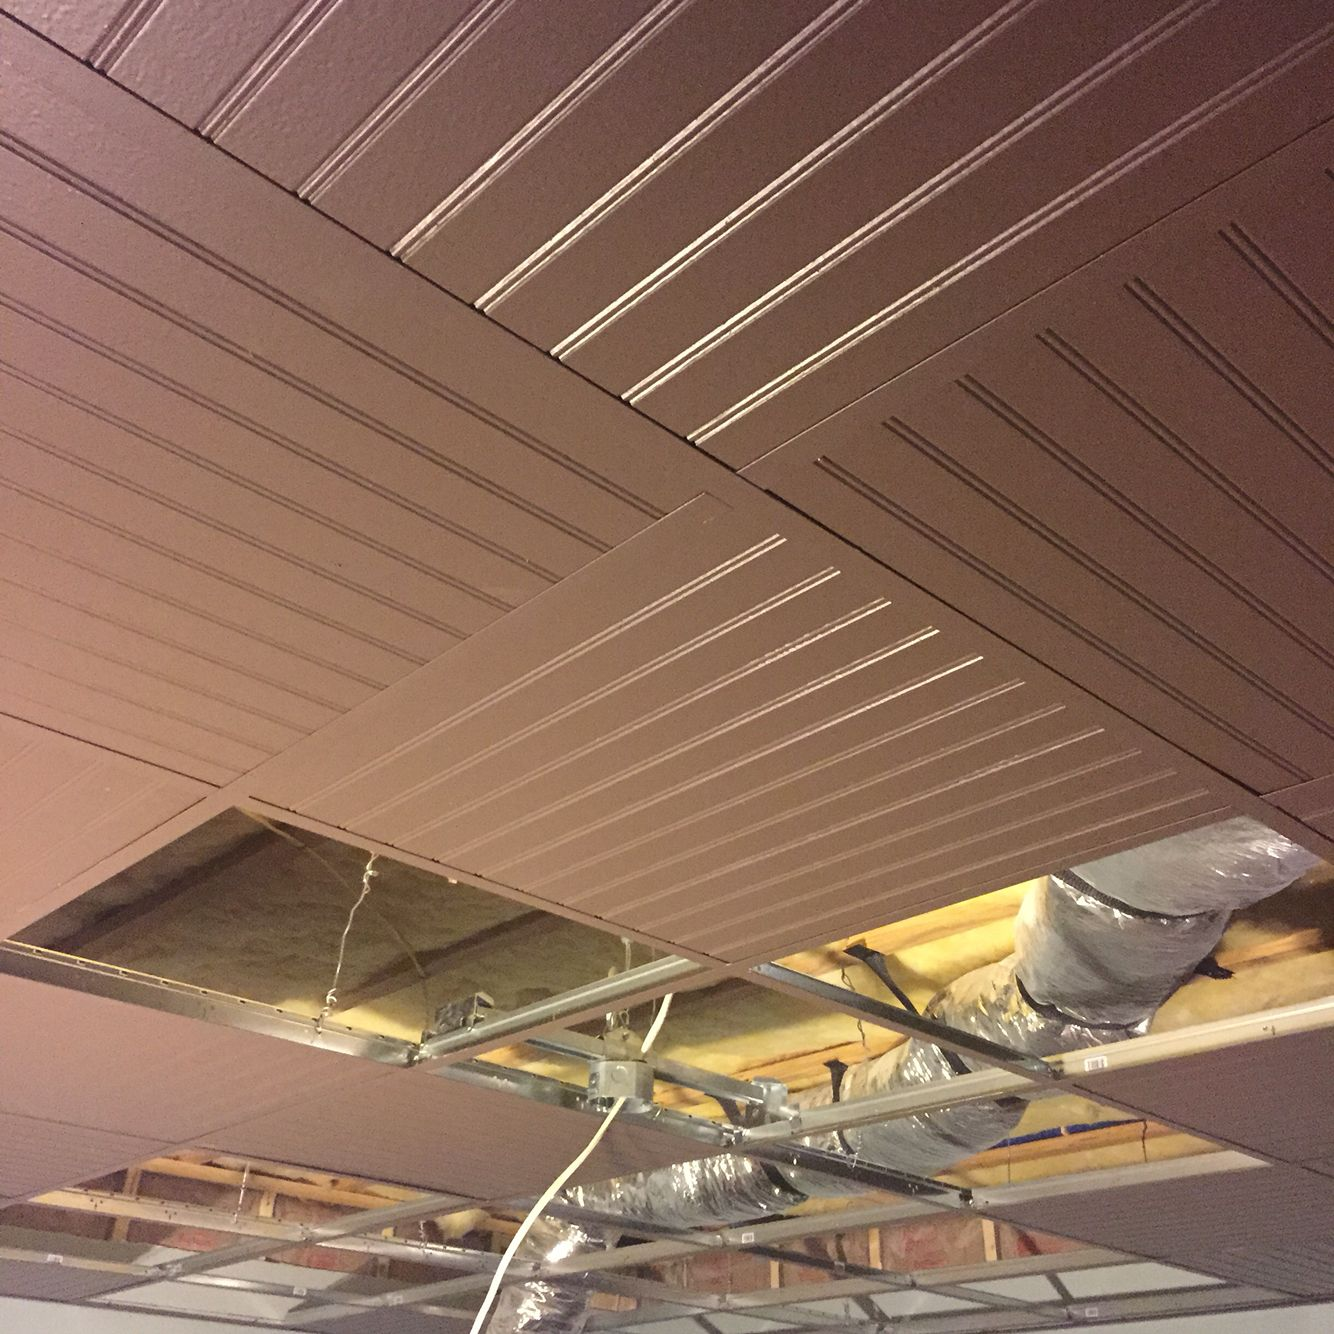 Suspended Ceiling Drop Ceiling Grid Painted With Bead Board Panels While In Progress Acoustic Ceiling Tiles Dropped Ceiling Drop Ceiling Tiles